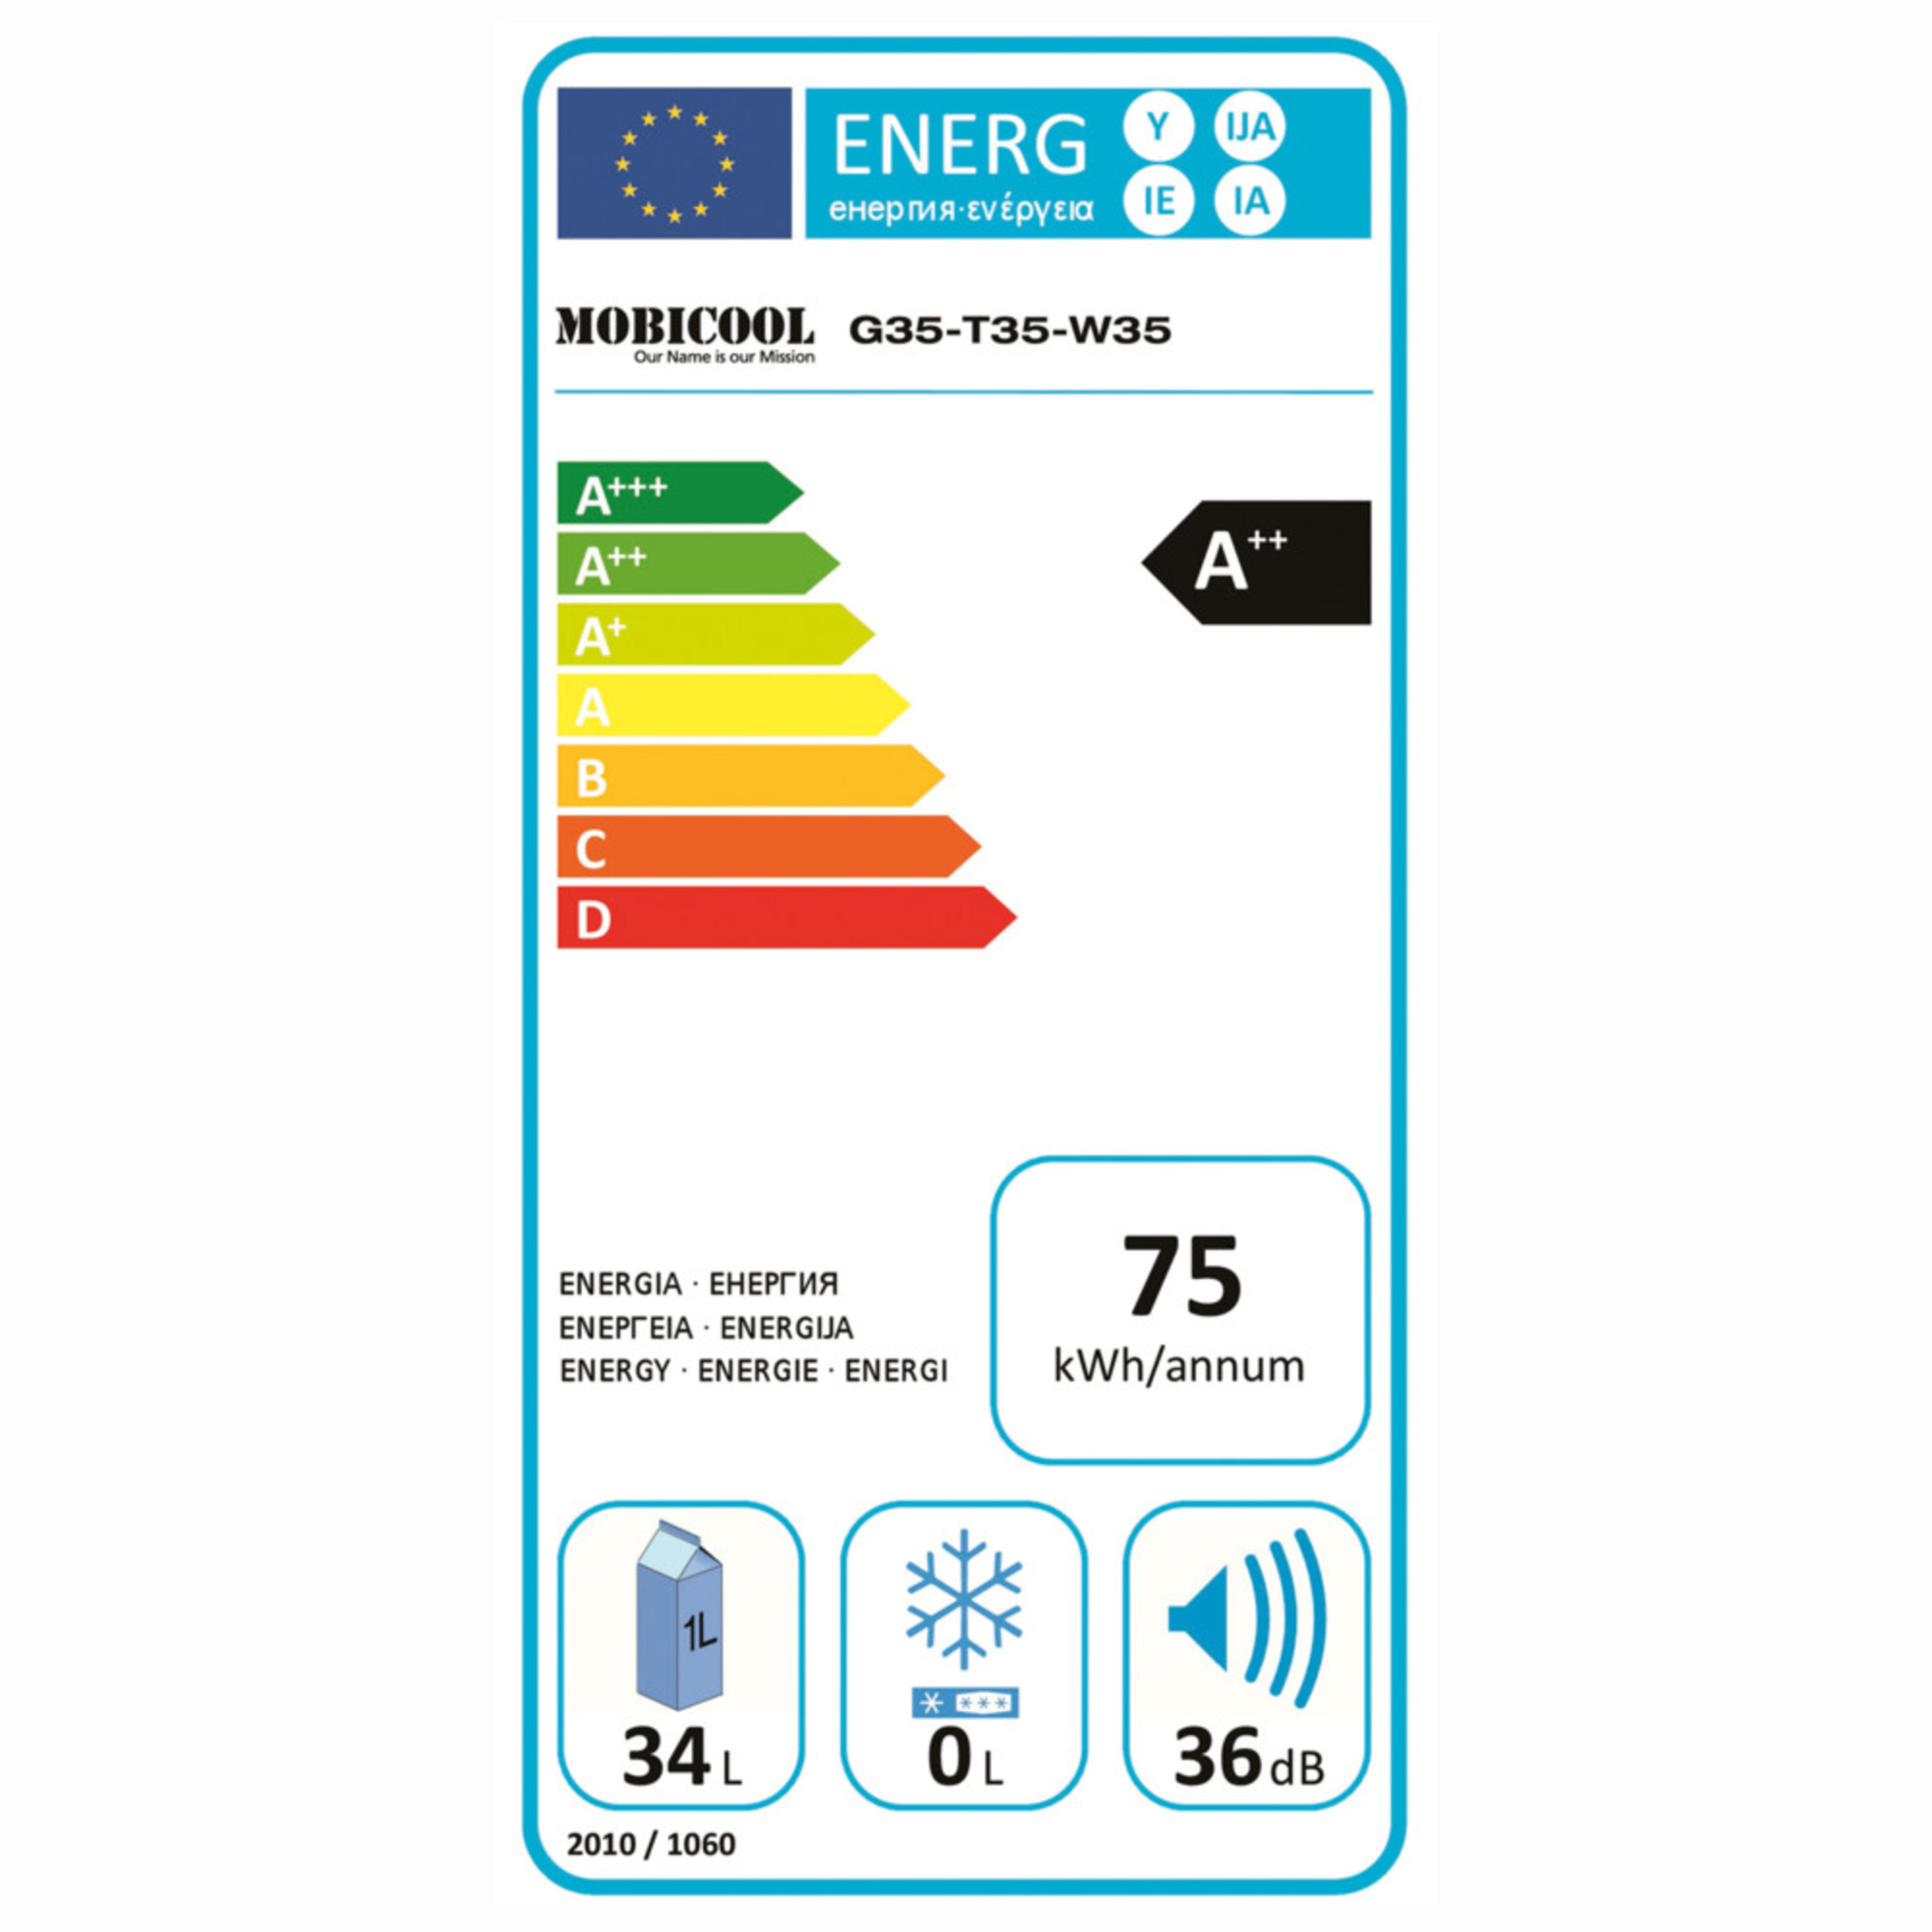 Mobicool G35 AC/DC Energy label